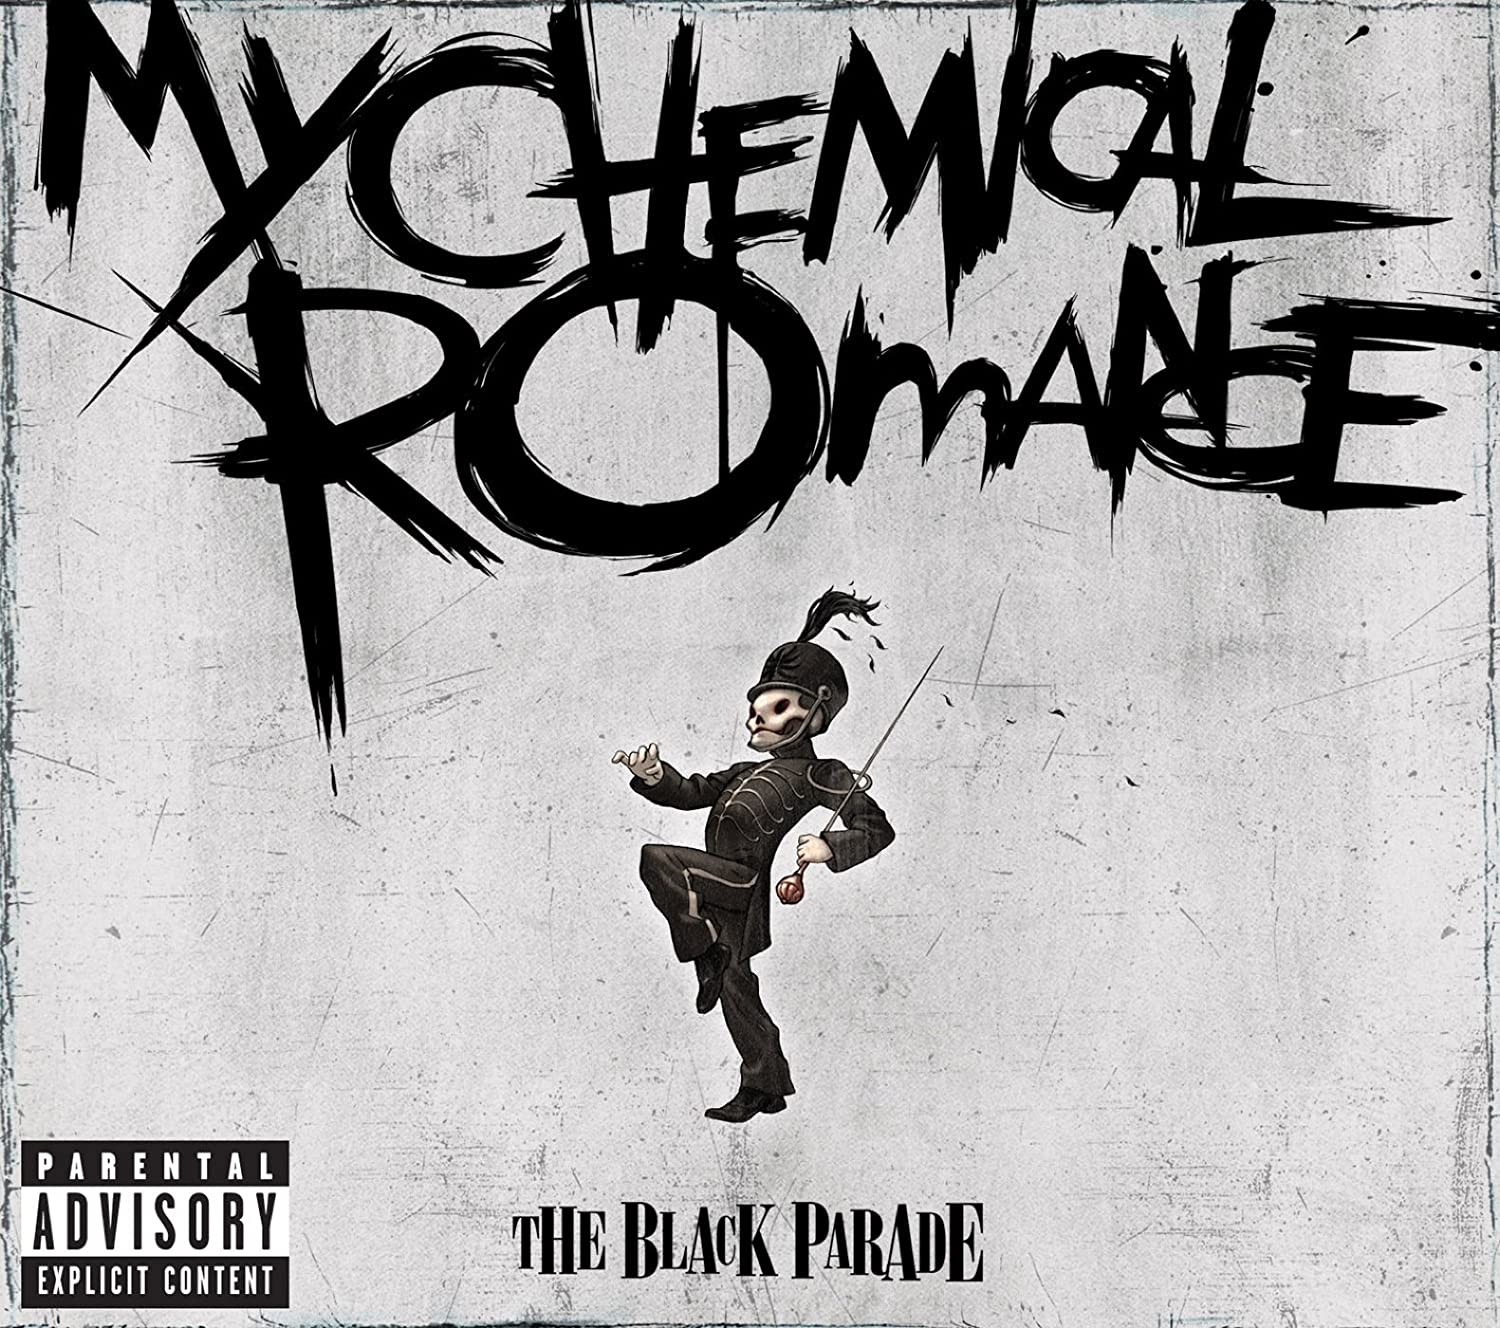 The Black Parade / My Chemical Romance